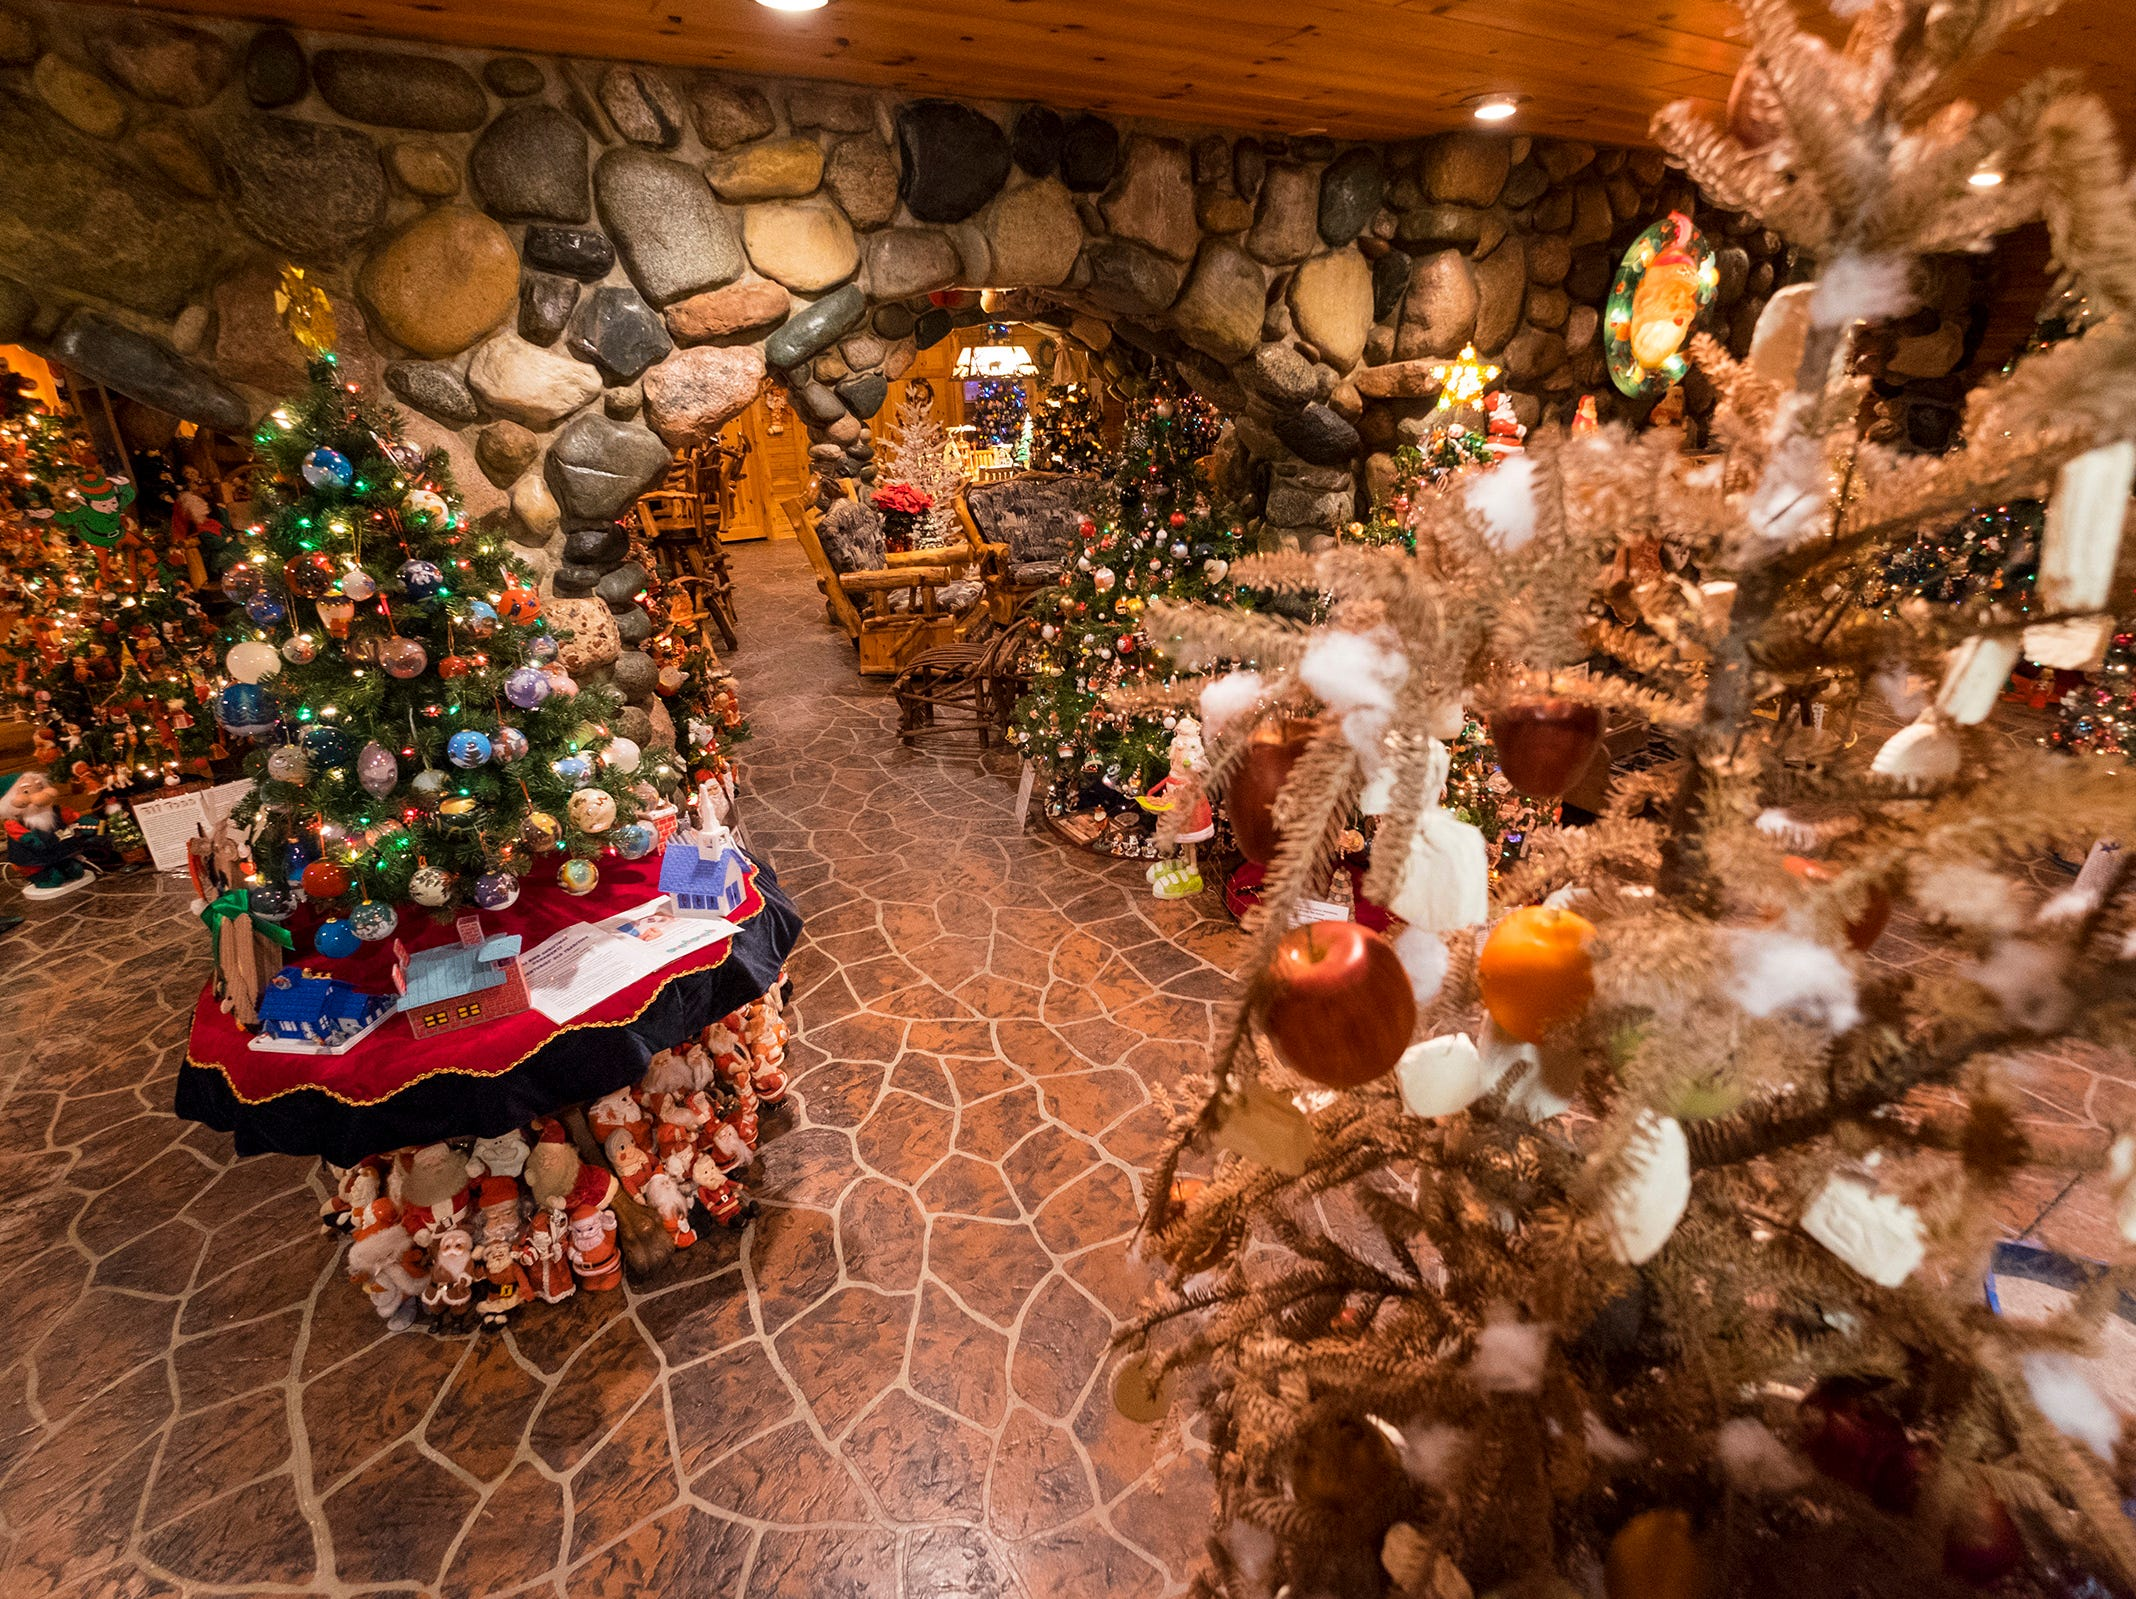 Christmas trees decorated for different themes are arranged in the basement of Al and Diane Kodet's Algonac home, where the annual History of the Christmas Tree Walk is held.